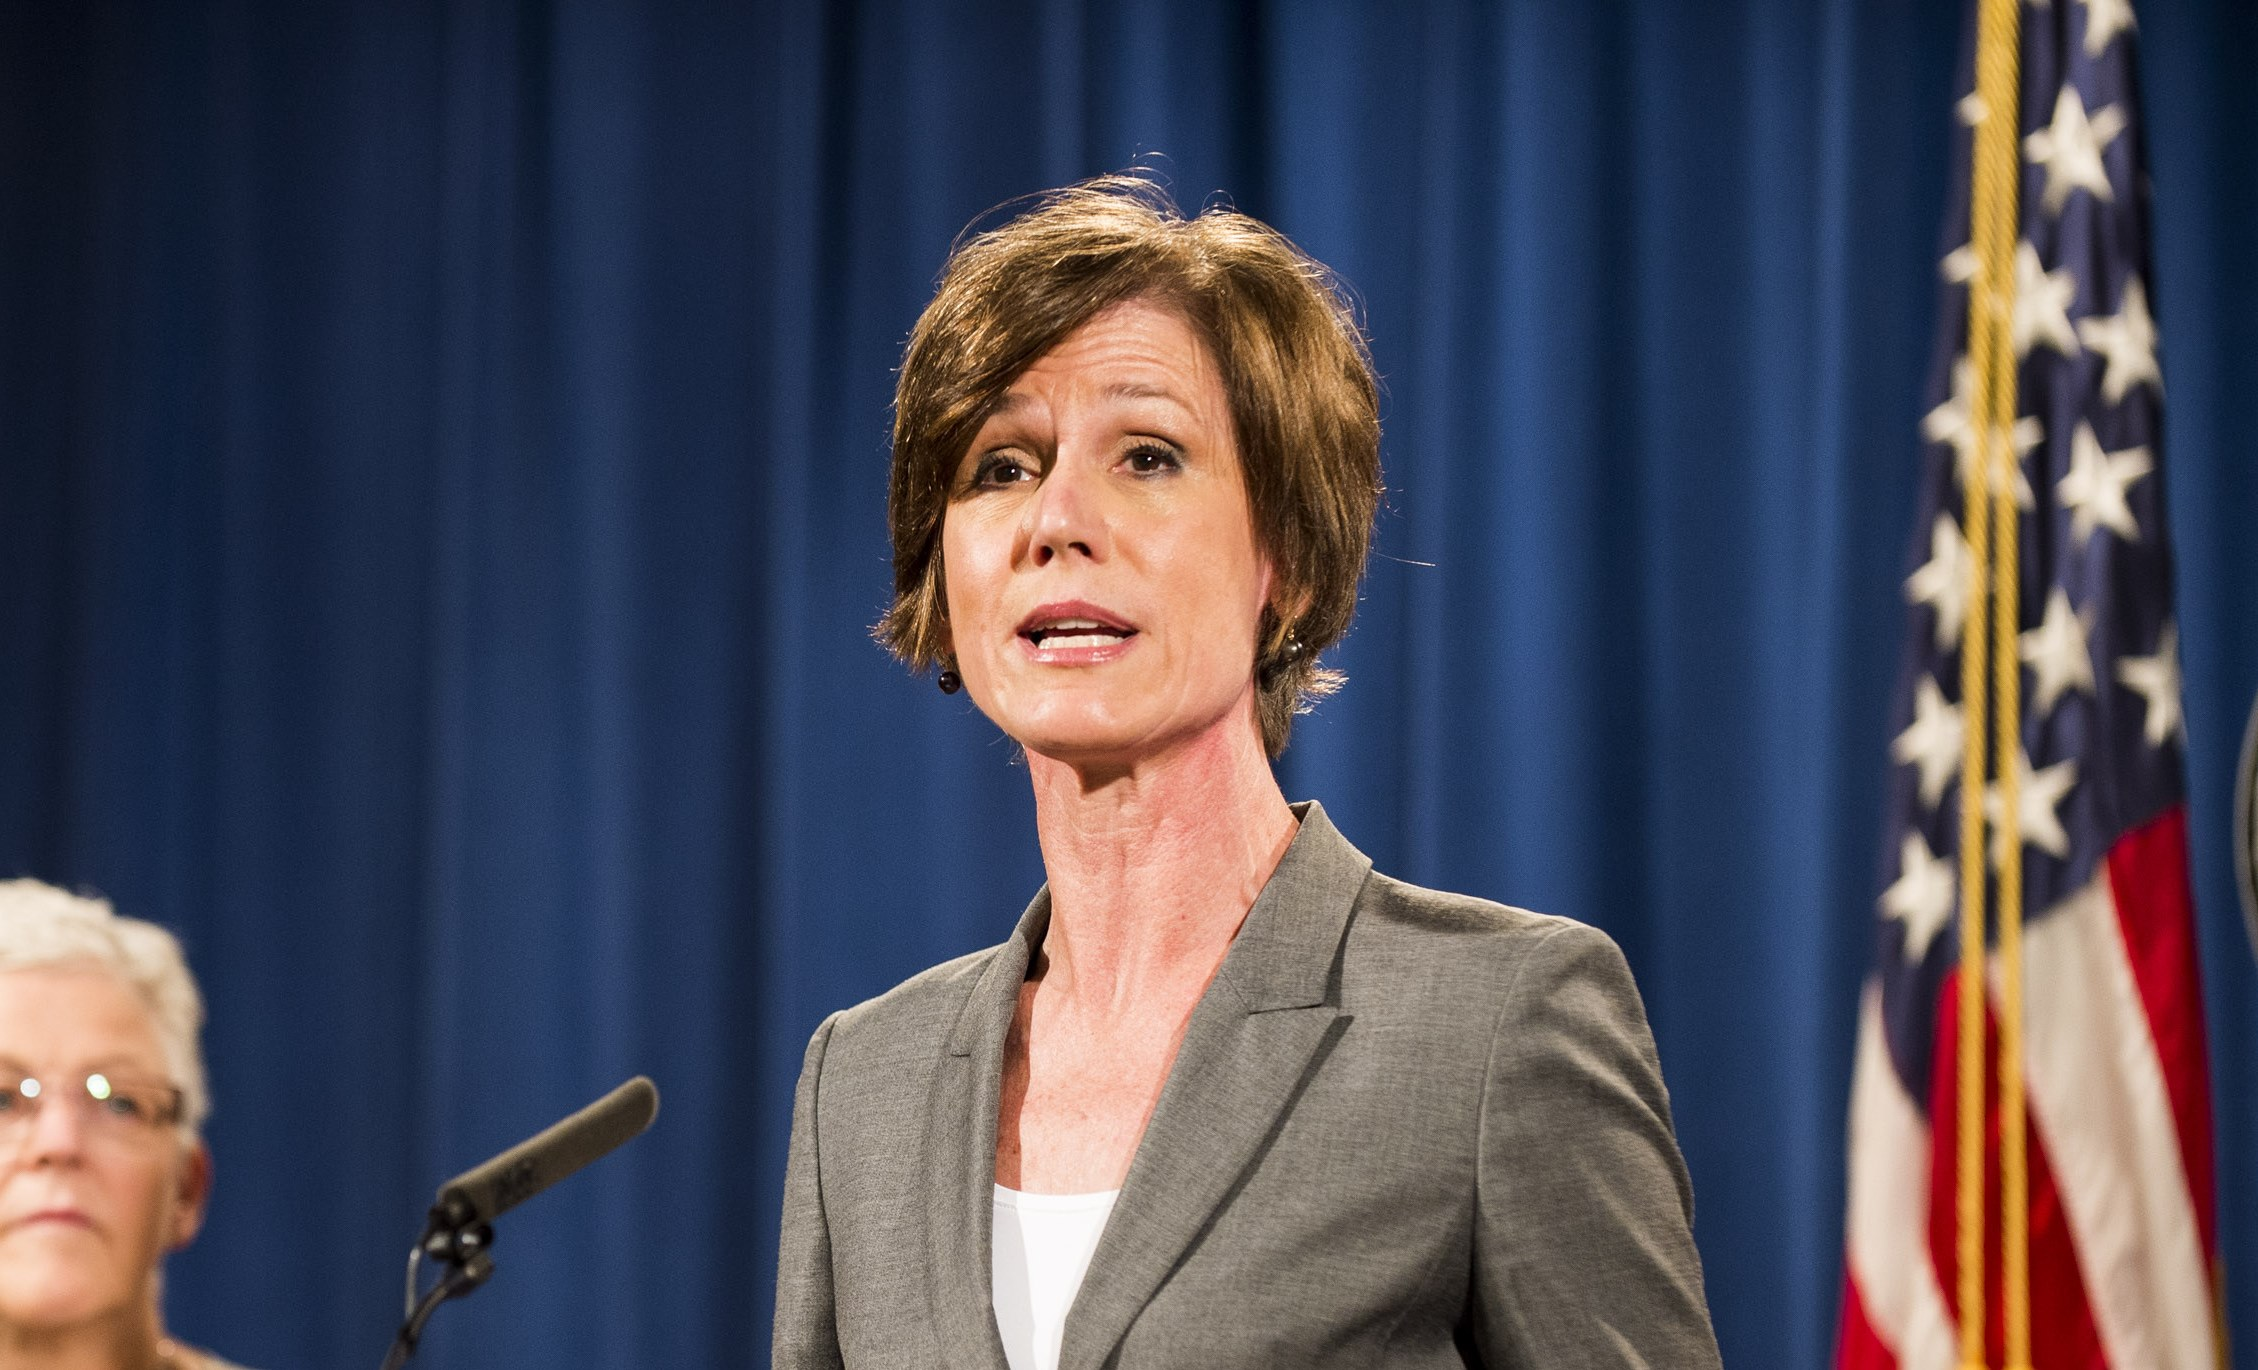 Attorney General Sally Yates was relieved of her duties by the Trump administration. (Getty Images)